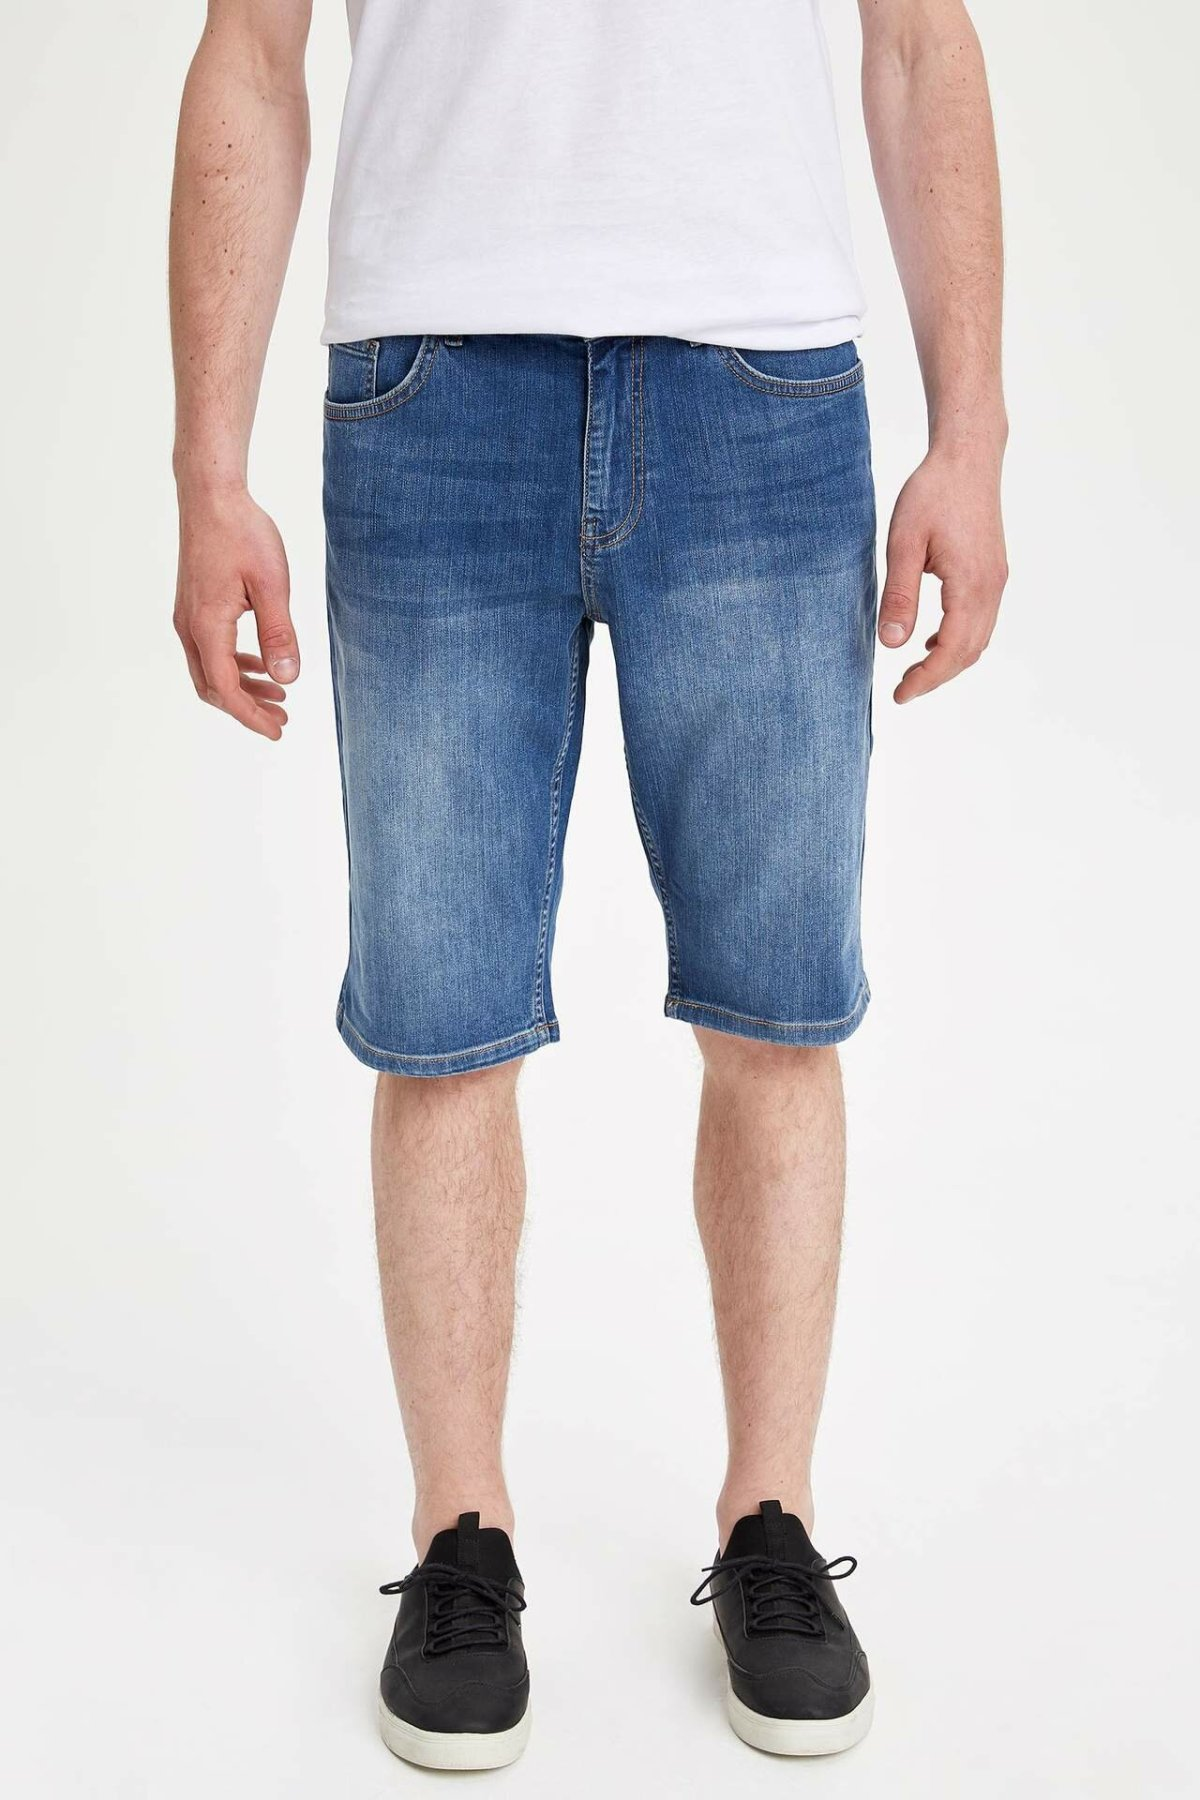 DeFacto Man Summer Blue Denim Shorts Men Washed Soft Denim Bottoms Shorts Male Denim Bermuda-L0189AZ19SM